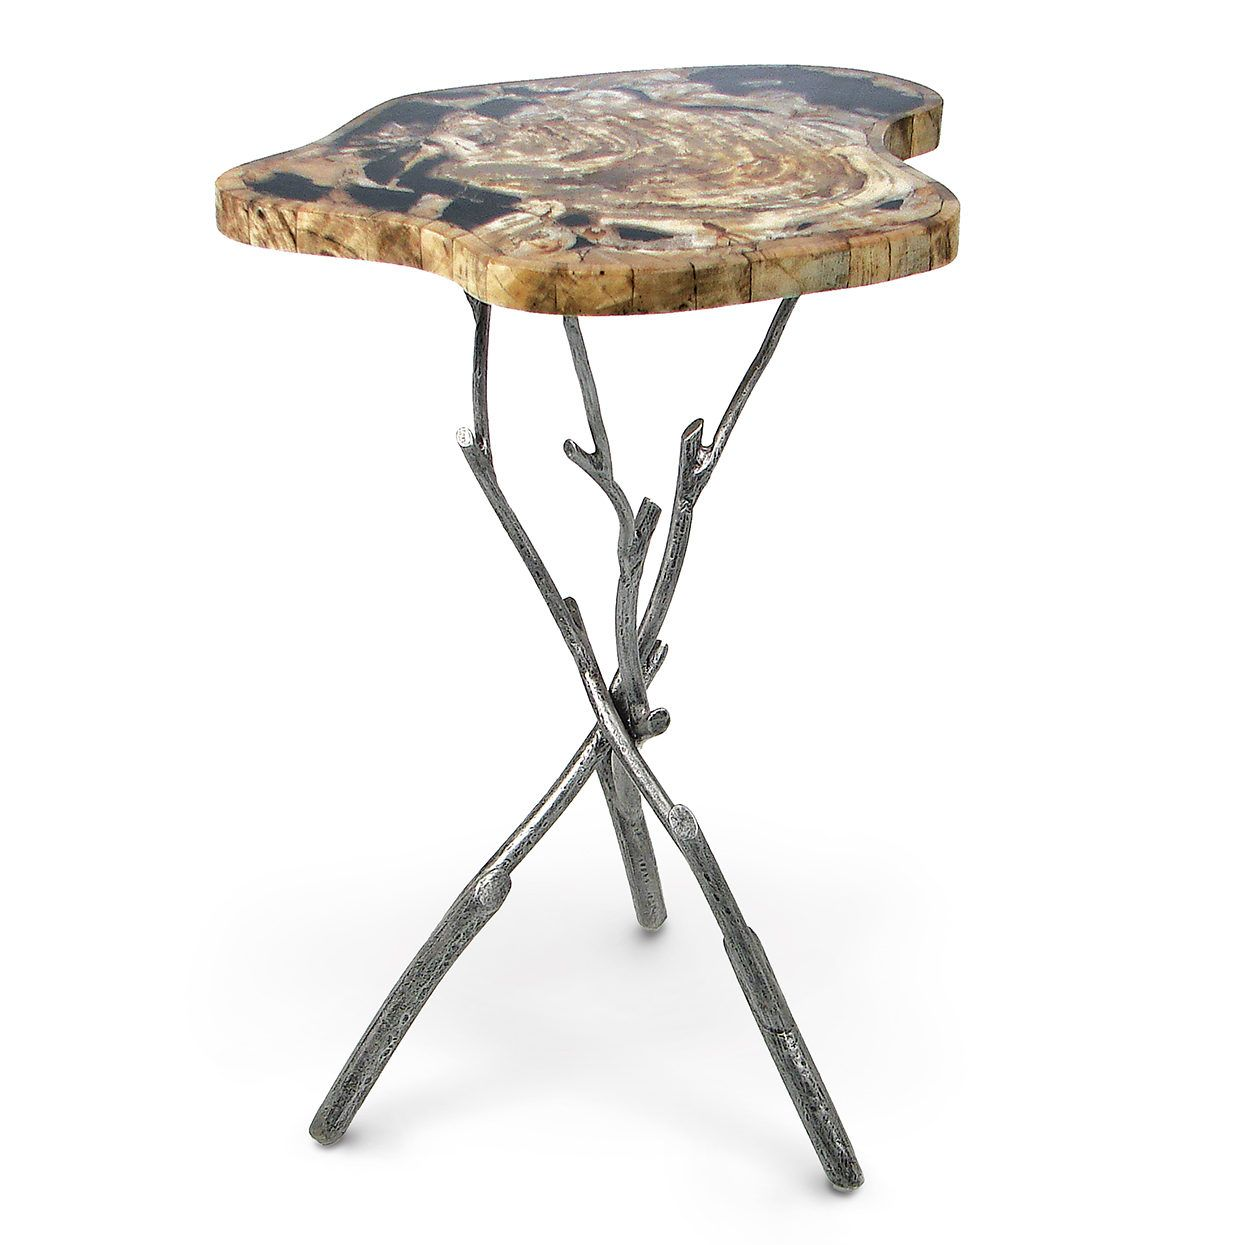 pin style home furnishings petrified wood furniture accent table health center square nesting tables pier one round plastic wrought iron legs wine holder counter height sets pub